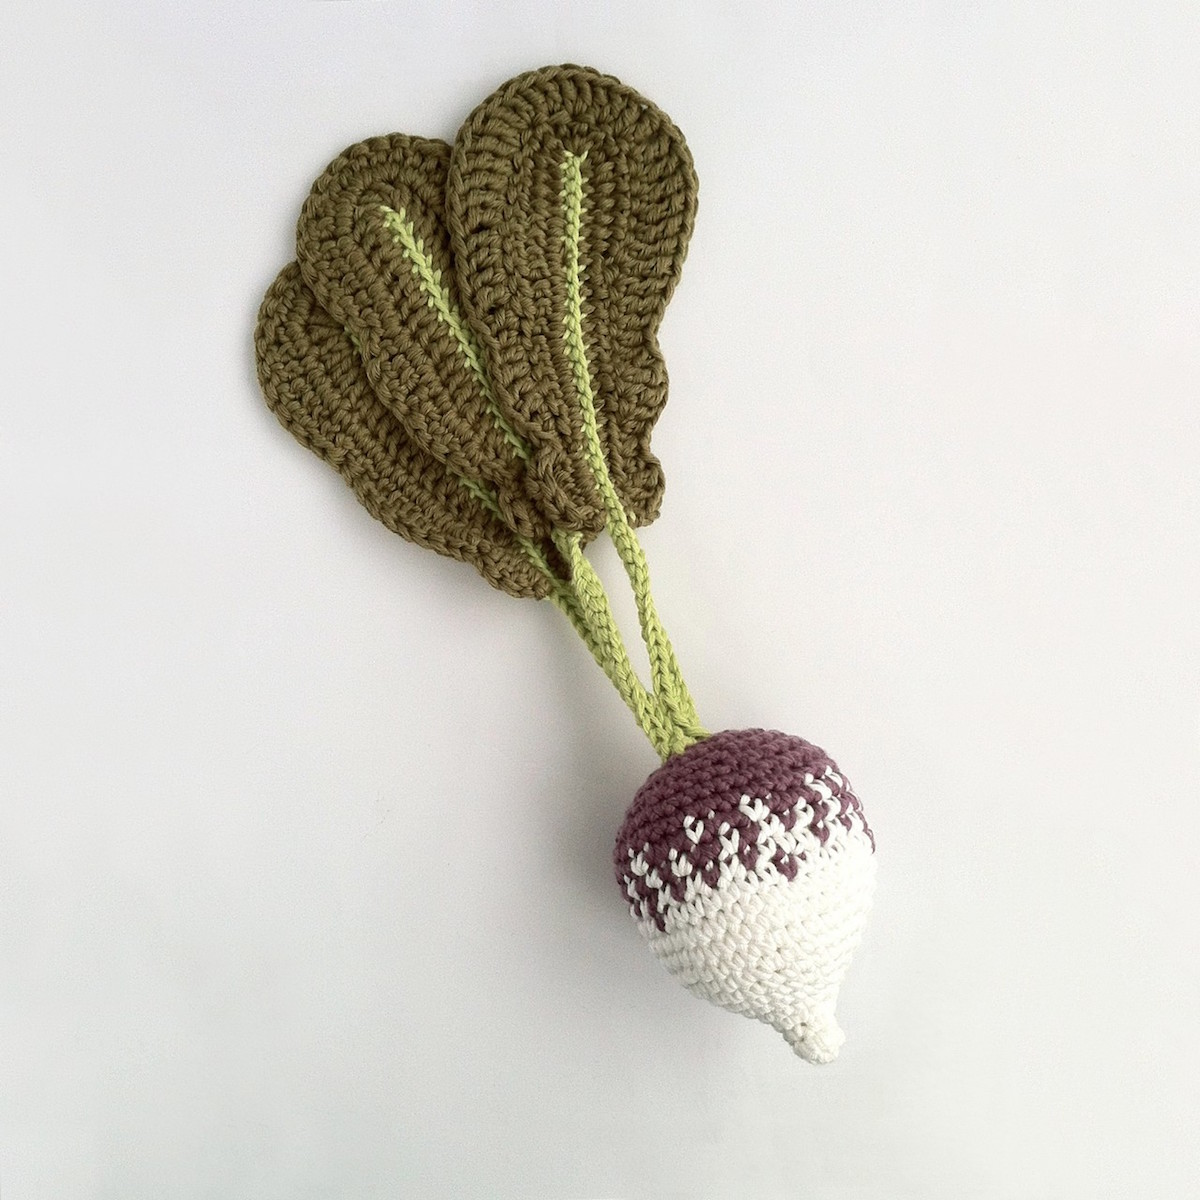 Picture of crocheted vegetable